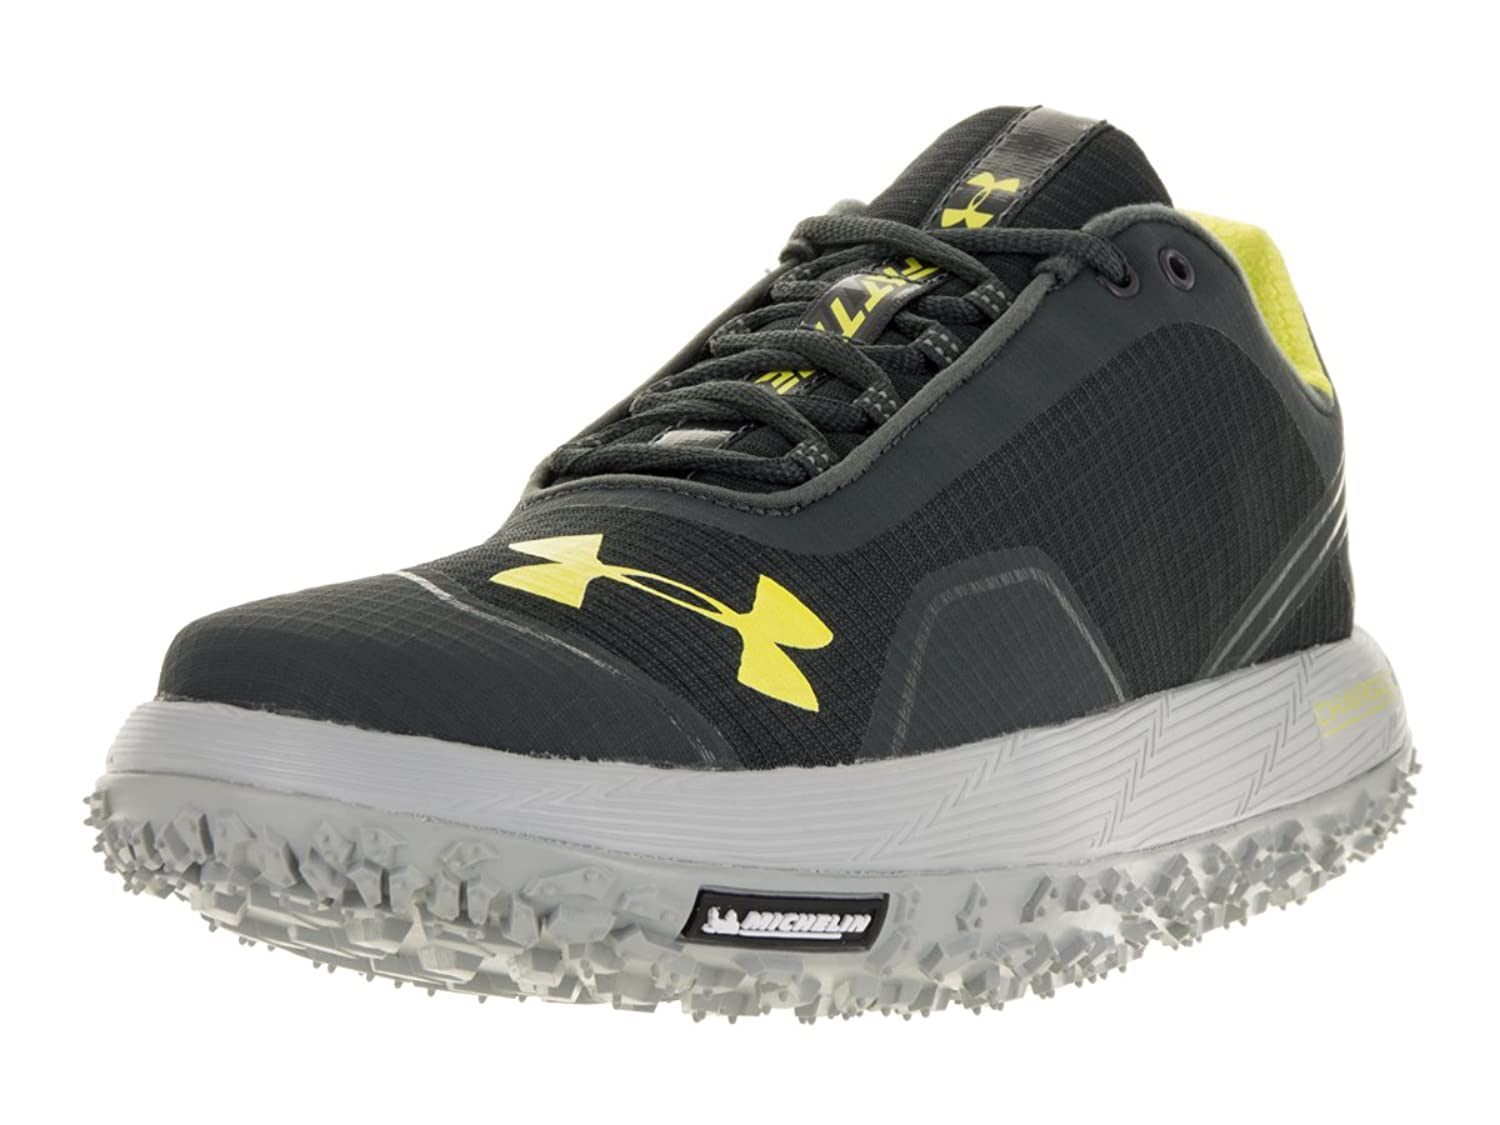 Under Armour Fat Tire Low Running Shoes Discount